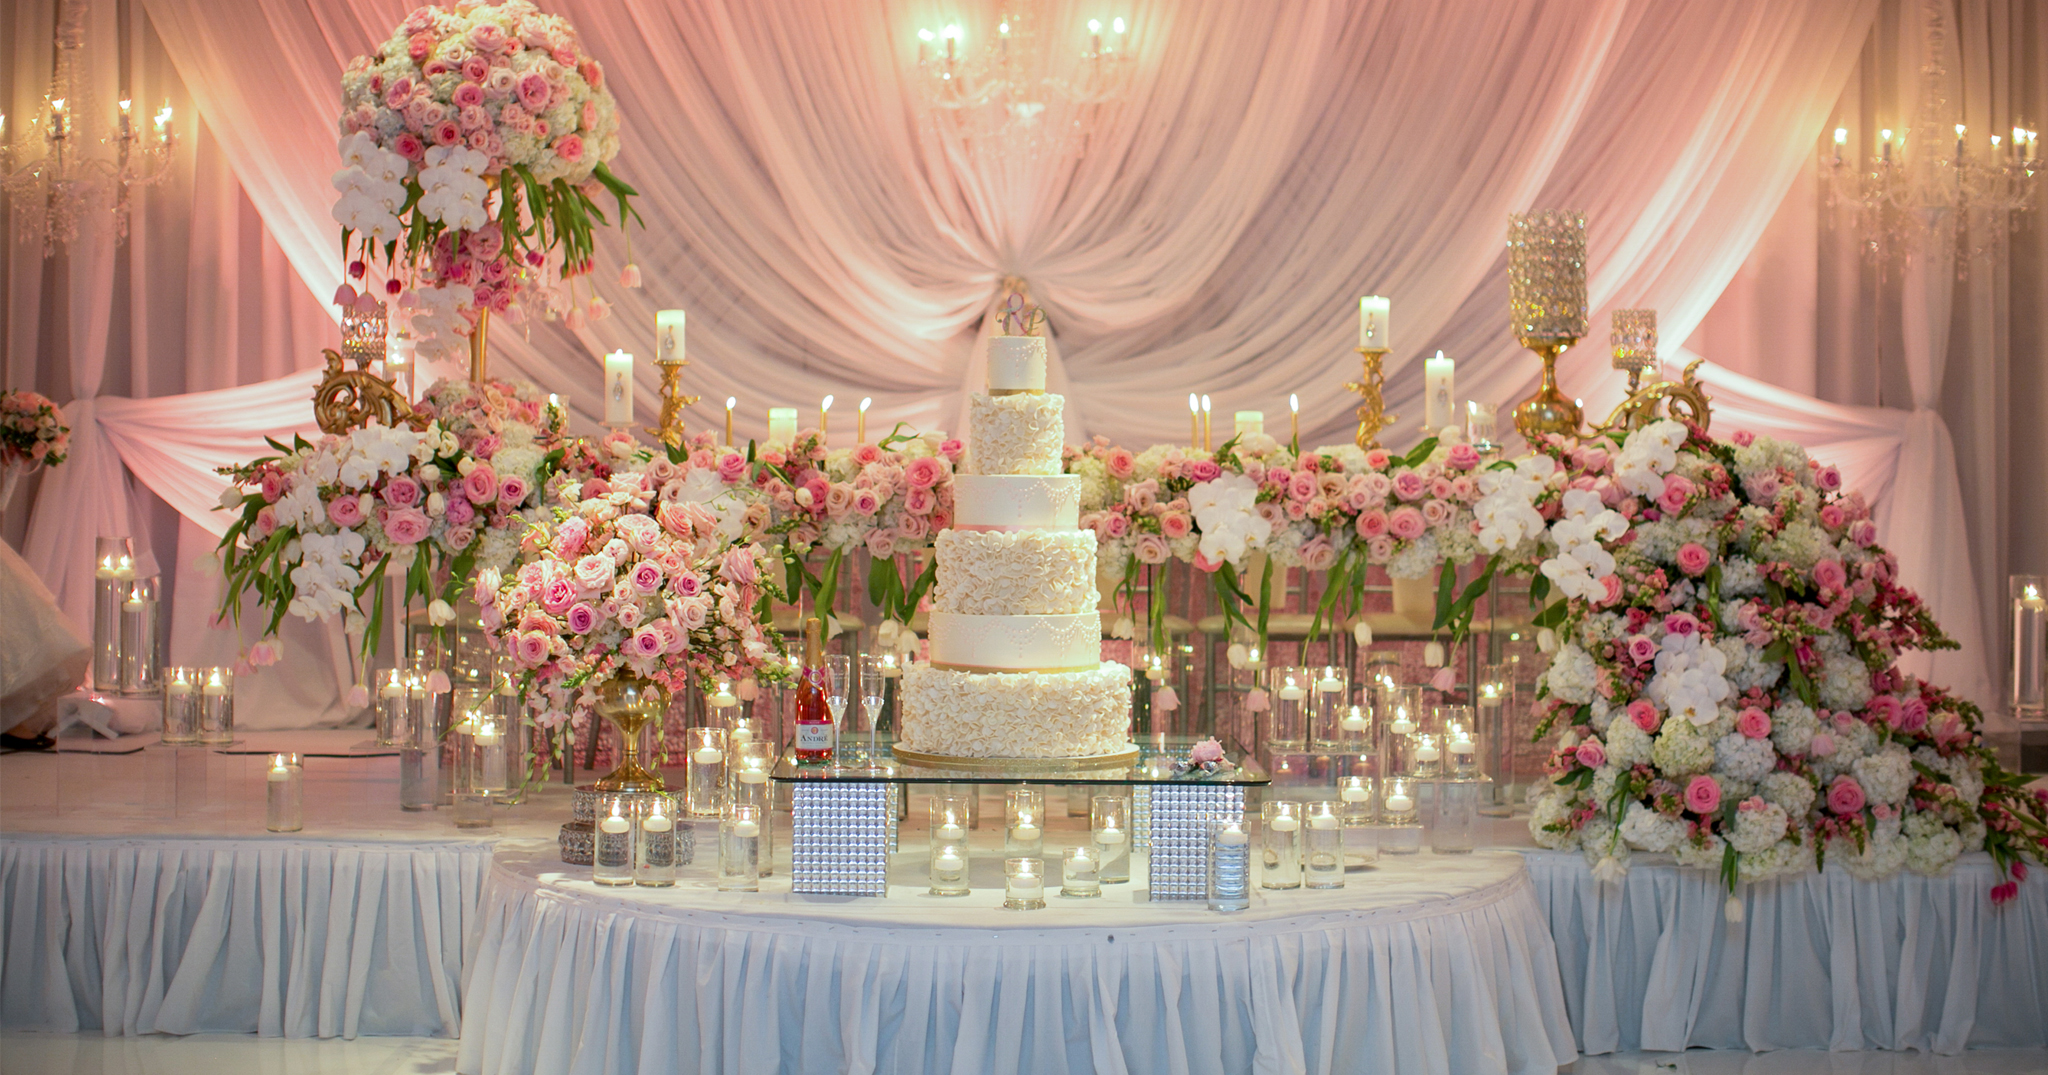 From One Bride-to-Be to the Next: The Four Things To Consider Before Making Your Own Wedding Centerpieces - BridalPulse